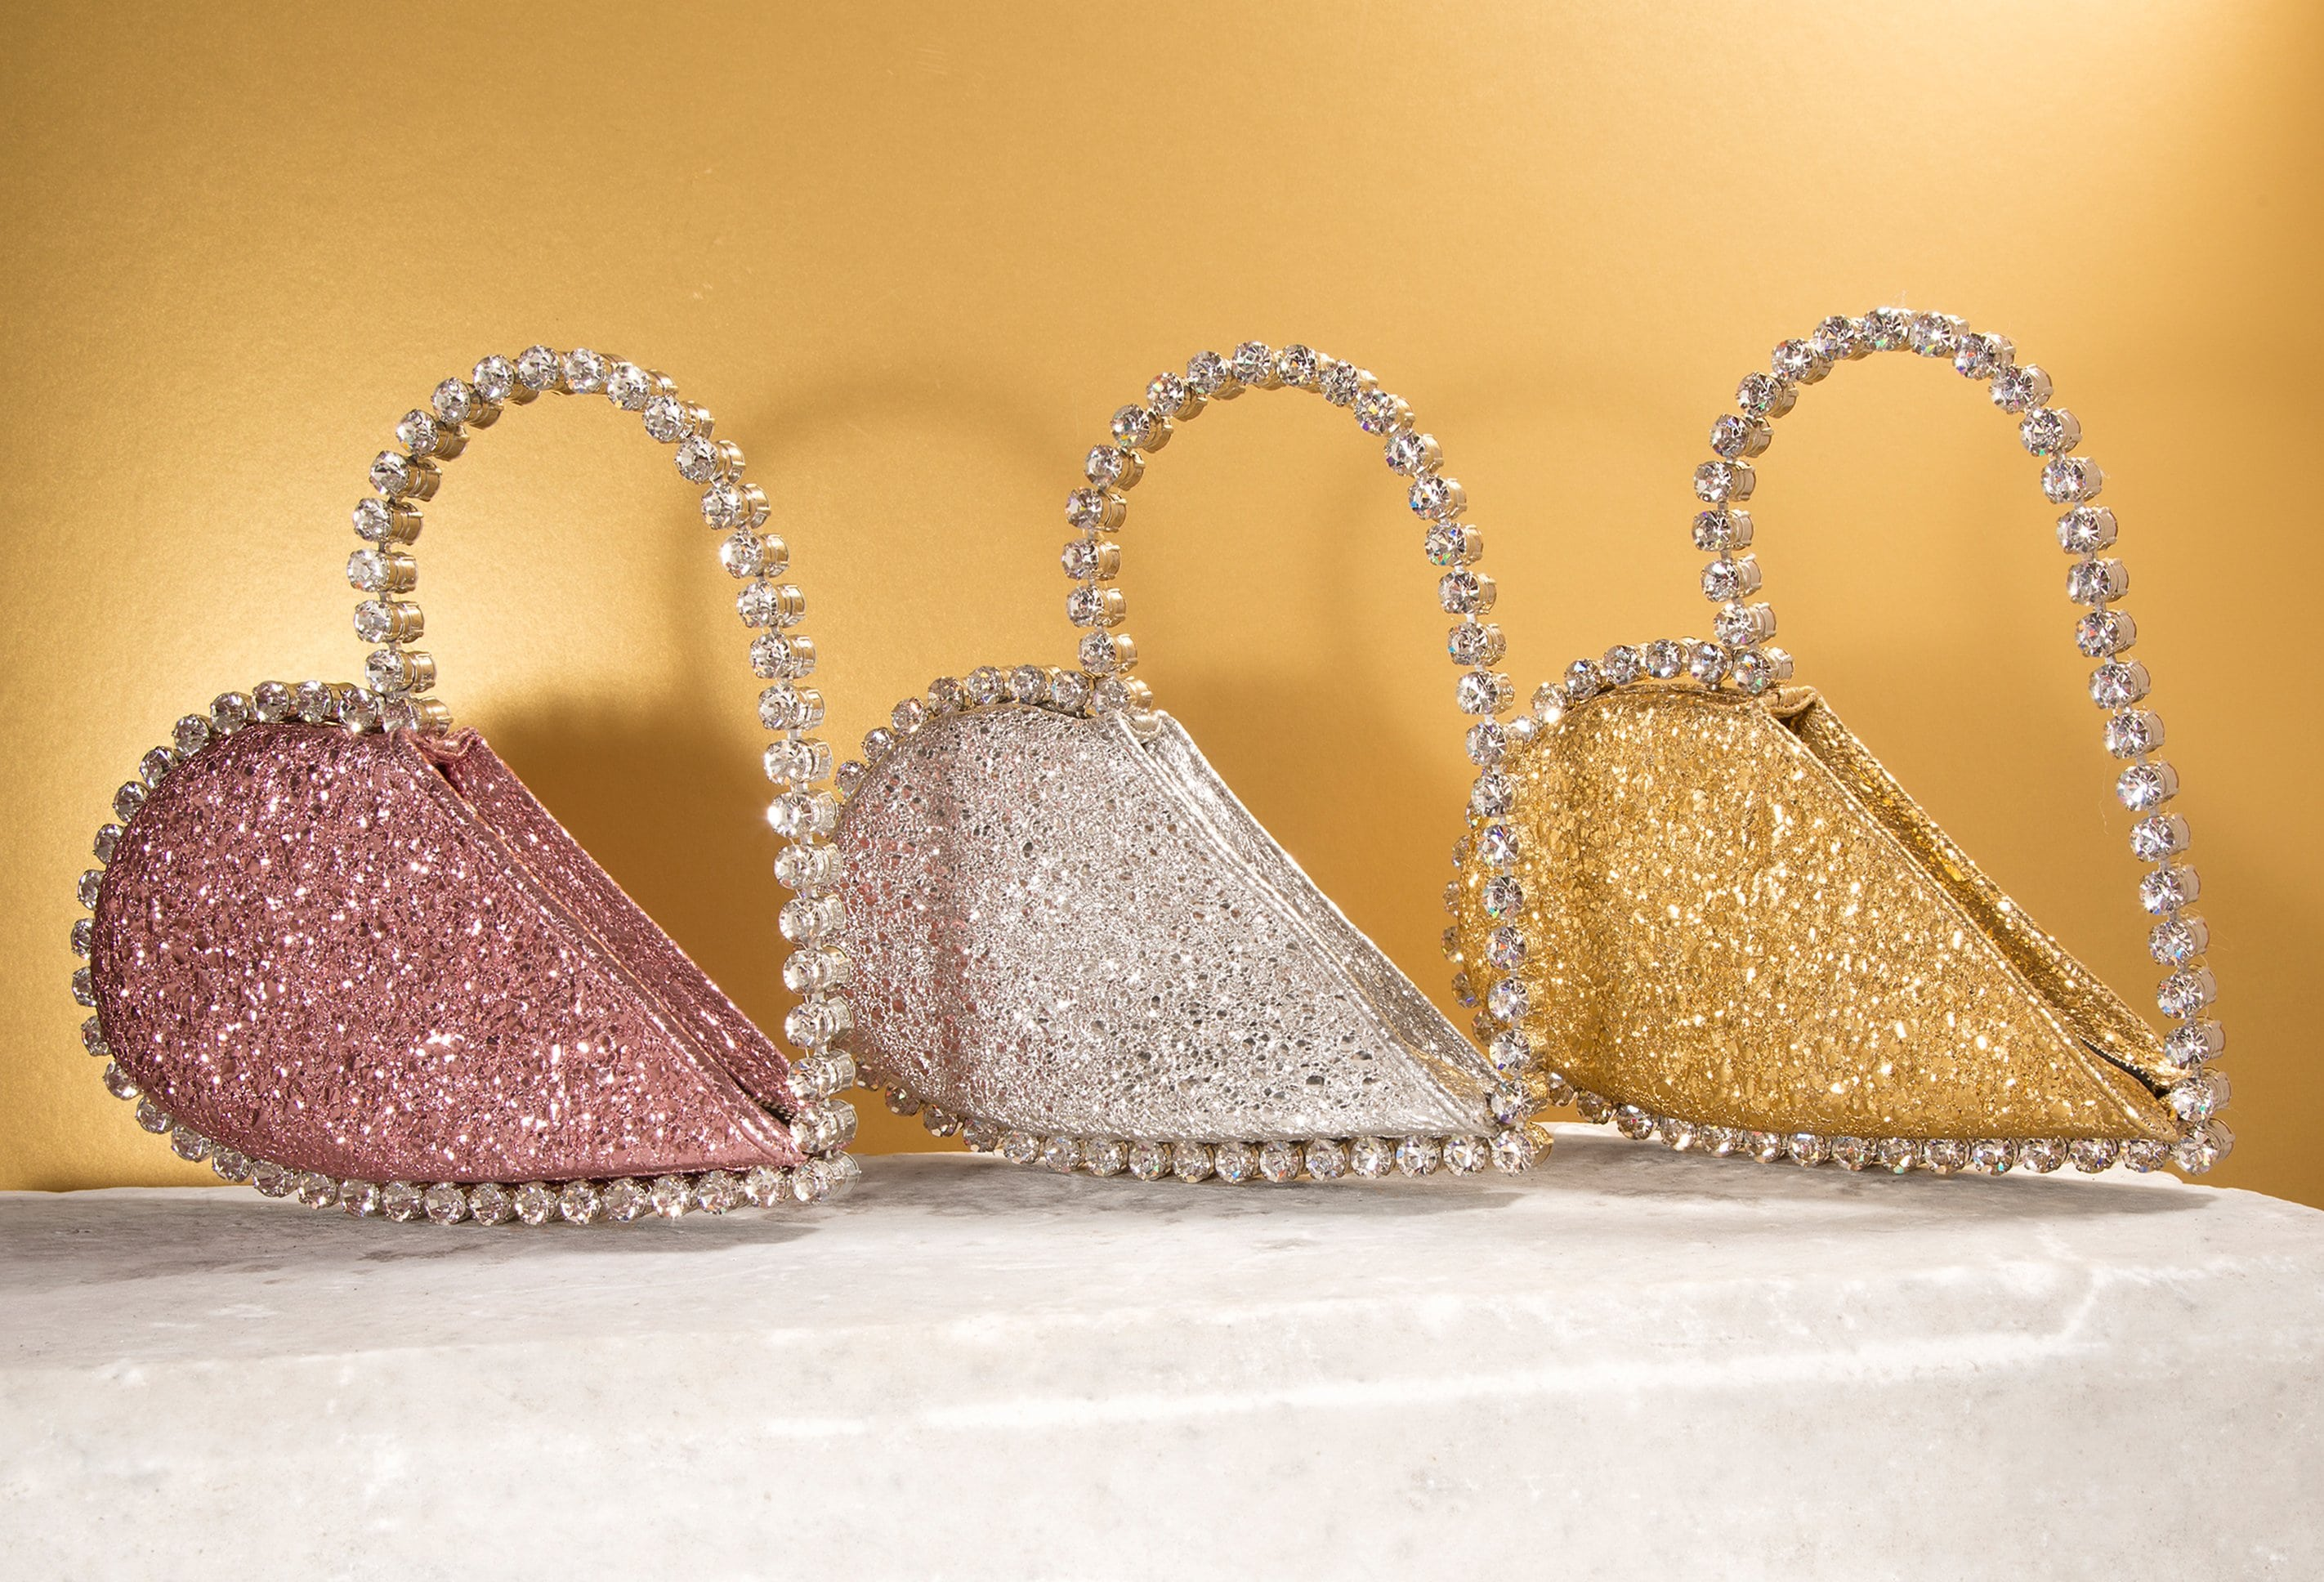 L'alingi London Spring-Summer 2021 Lookbook cover with 3 metallic heart shaped clutches